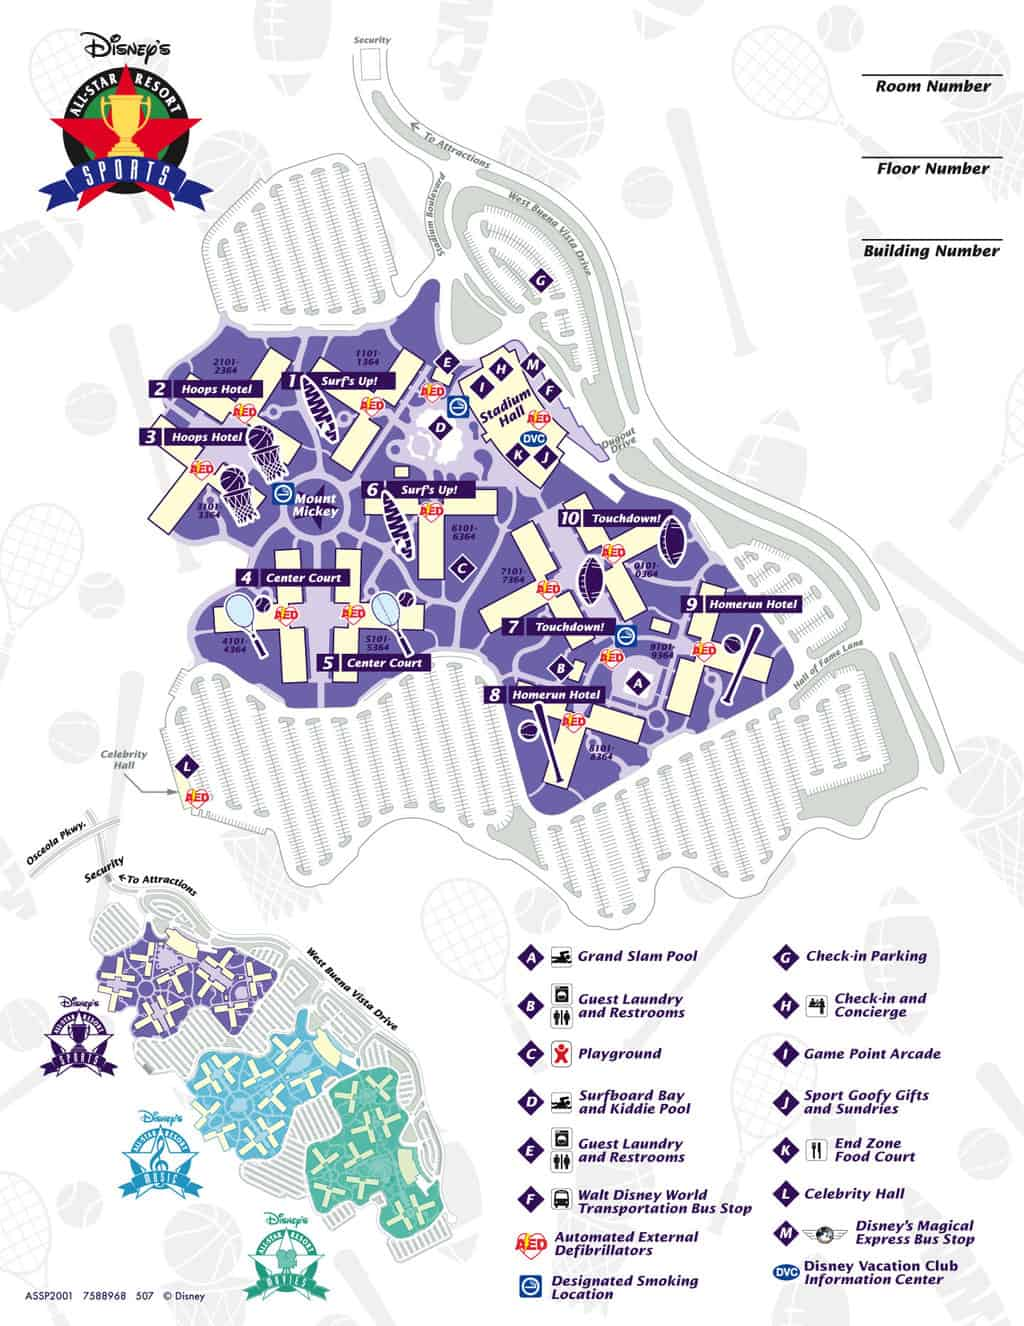 Walt Disney World Maps | KennythePirate.com